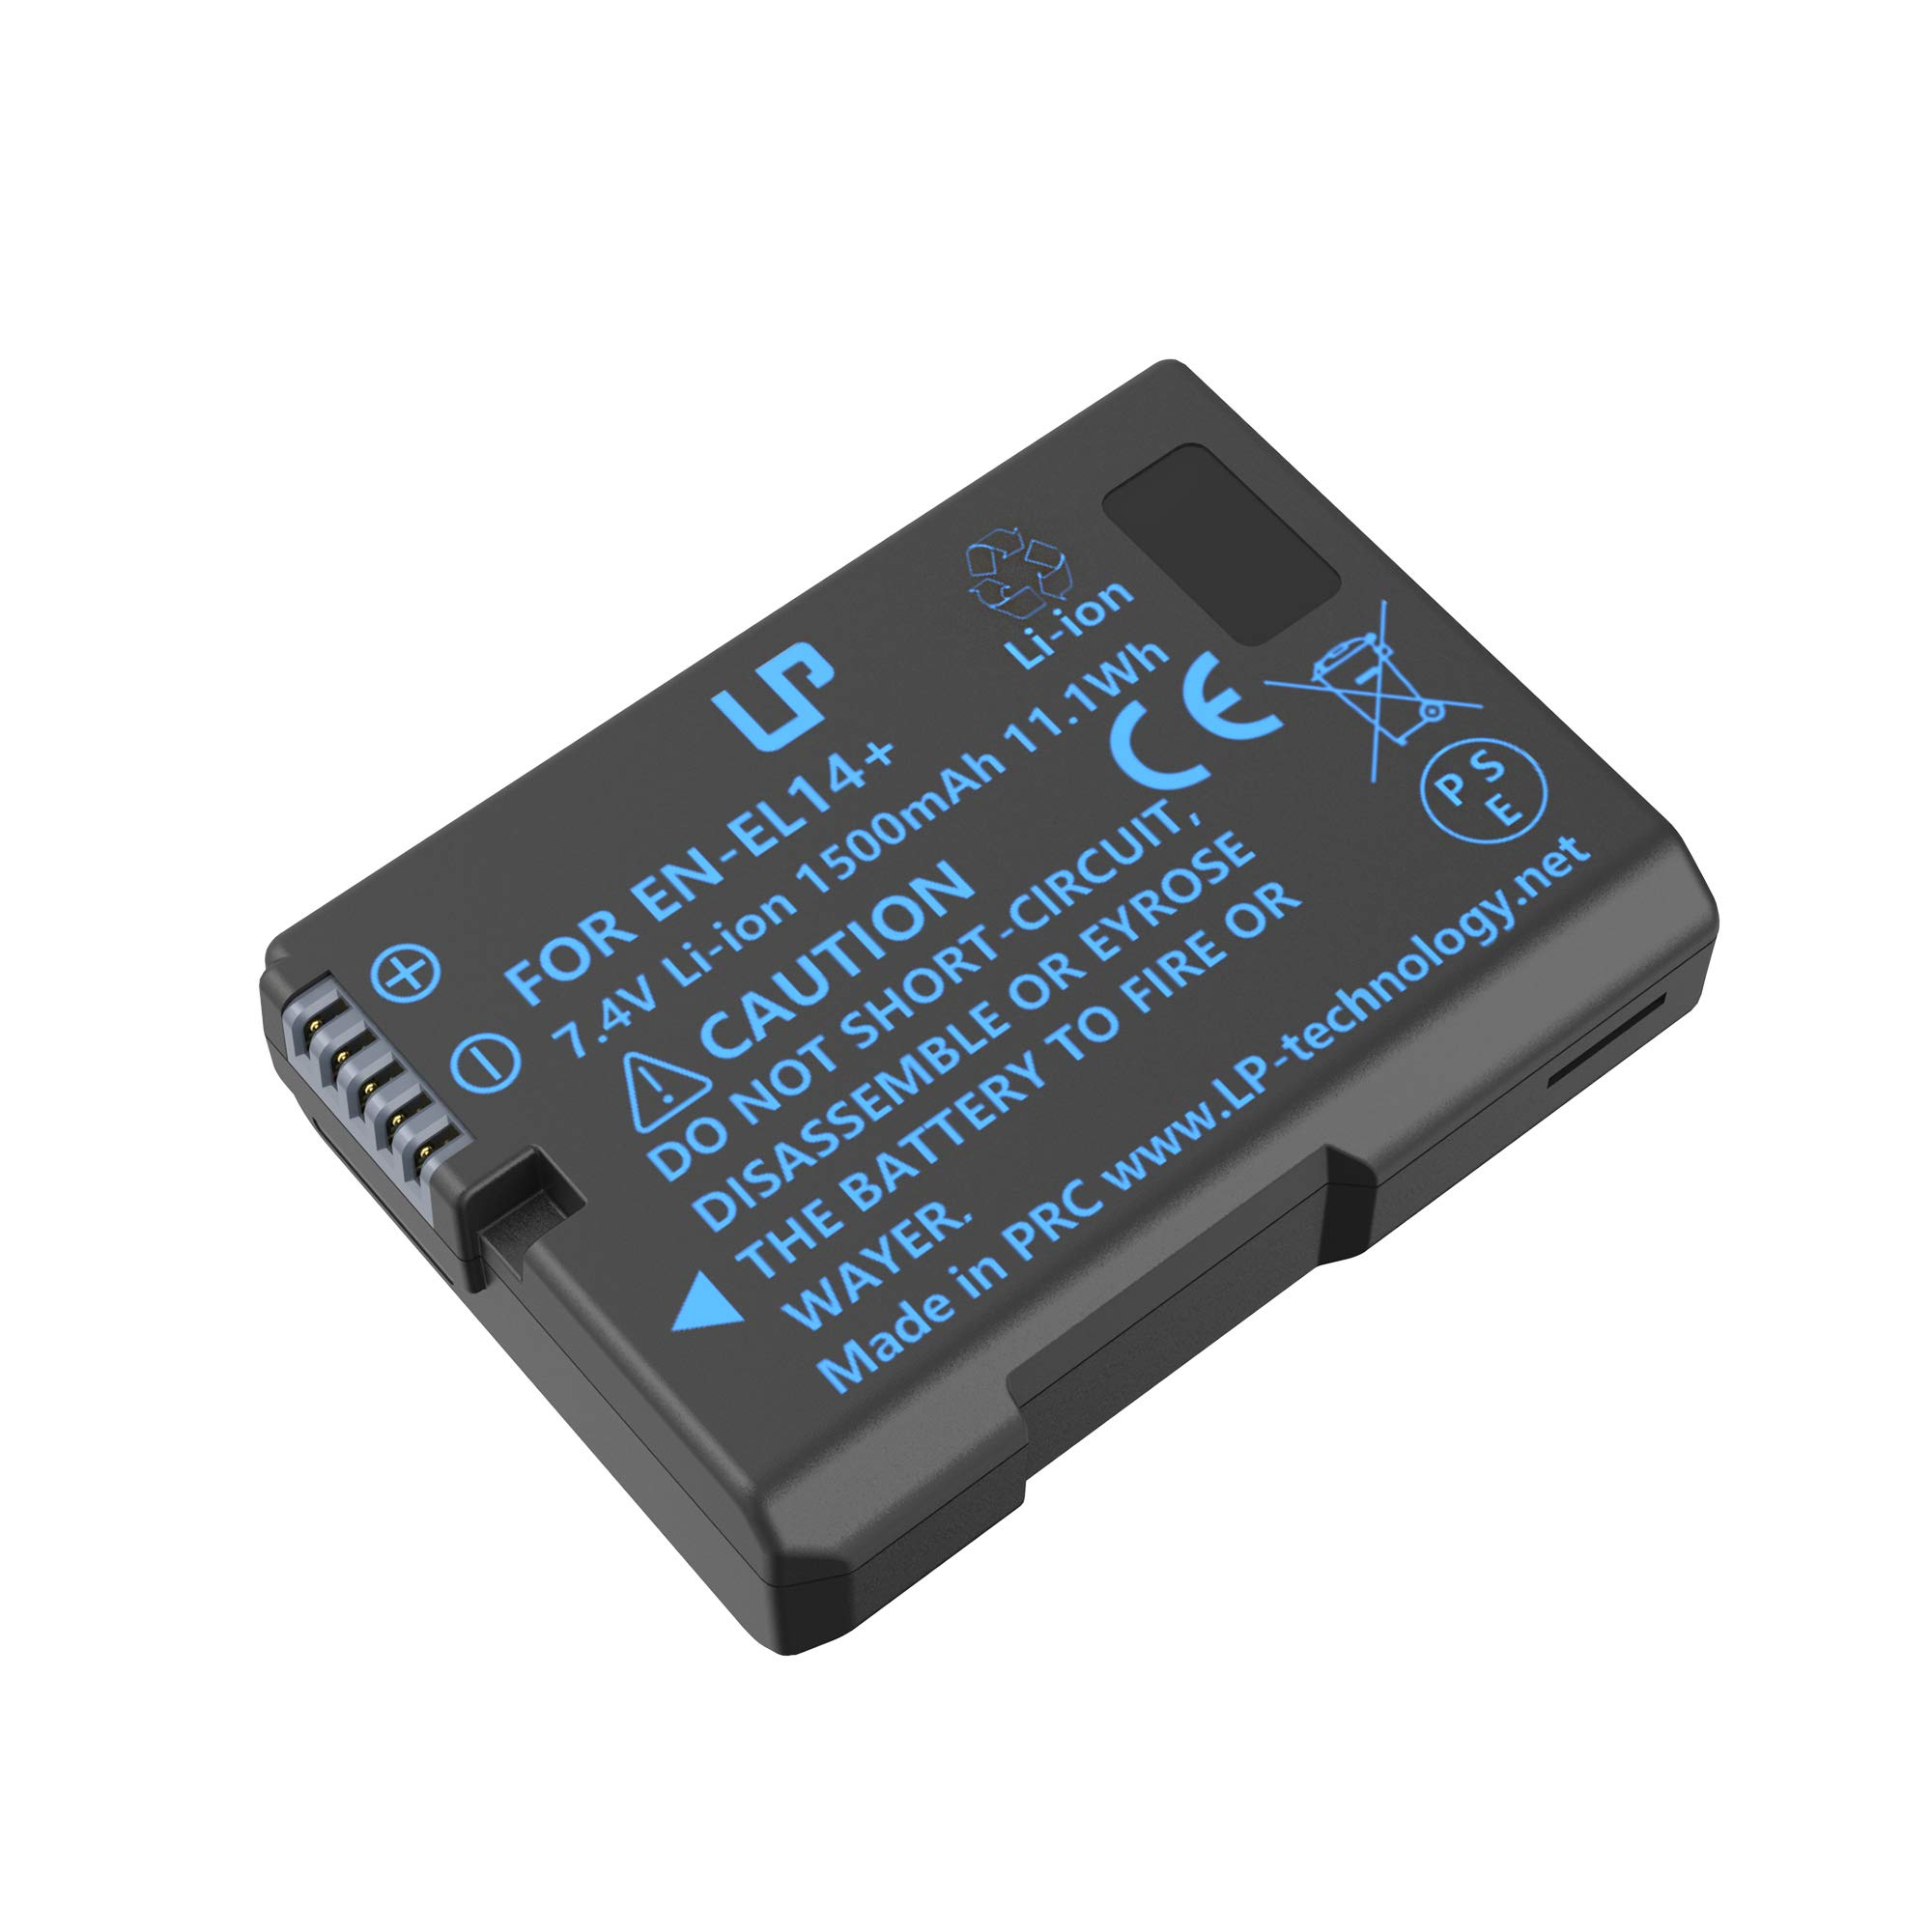 LP EN-EL14 EN EL14a Battery, Compatible with Nikon D3100, D3200, D3300, D3400, D3500, D5100, D5200, D5300, D5500, D5600, DF, P7000, P7700 & More by LP